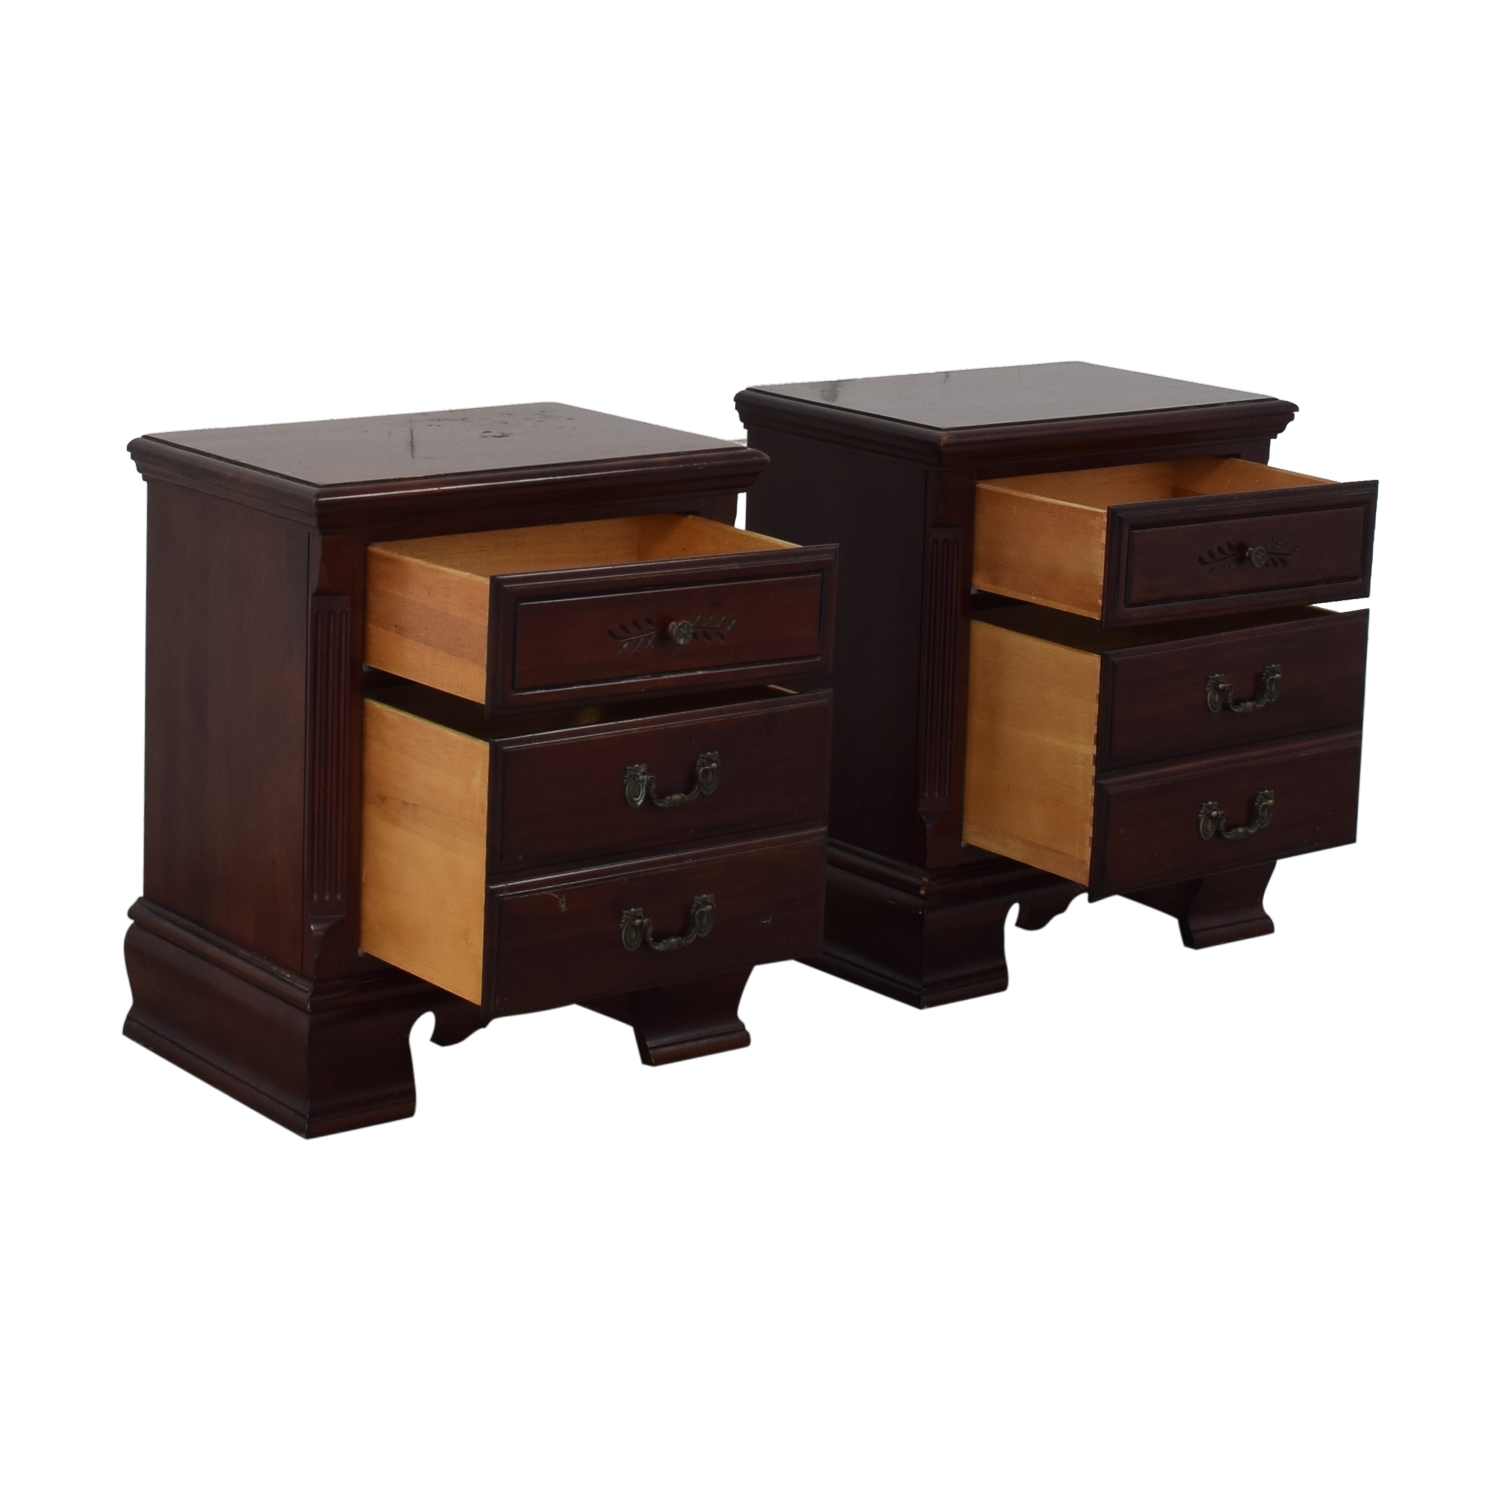 shop  Heirloom Traditions Two-Drawer End Tables online